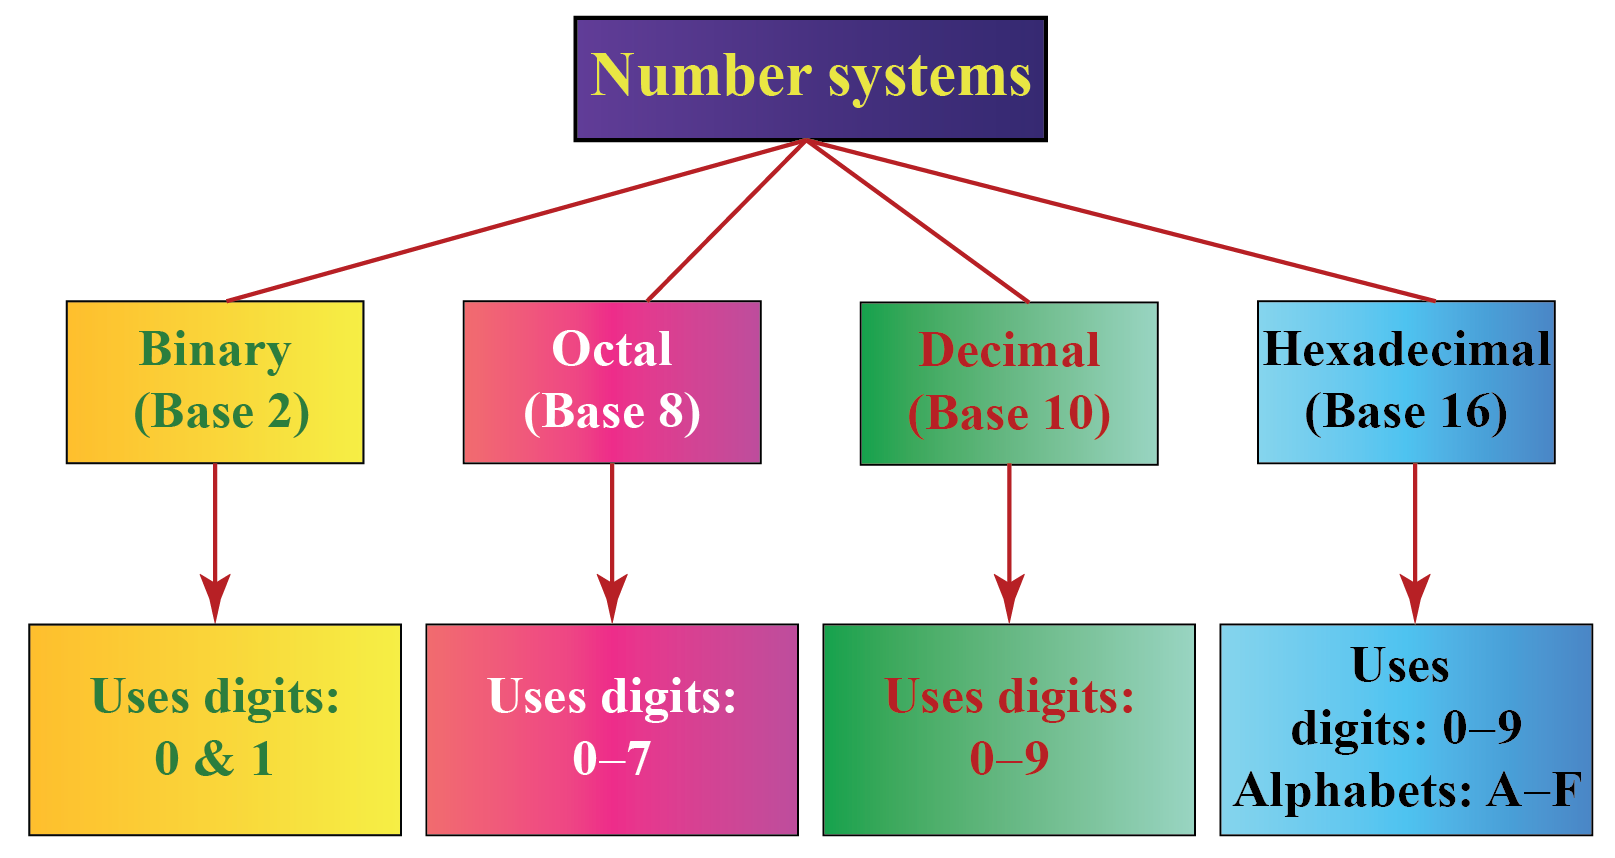 Number systems chart showing binary number system, octal number system, decimal number system and hexadecimal number system.